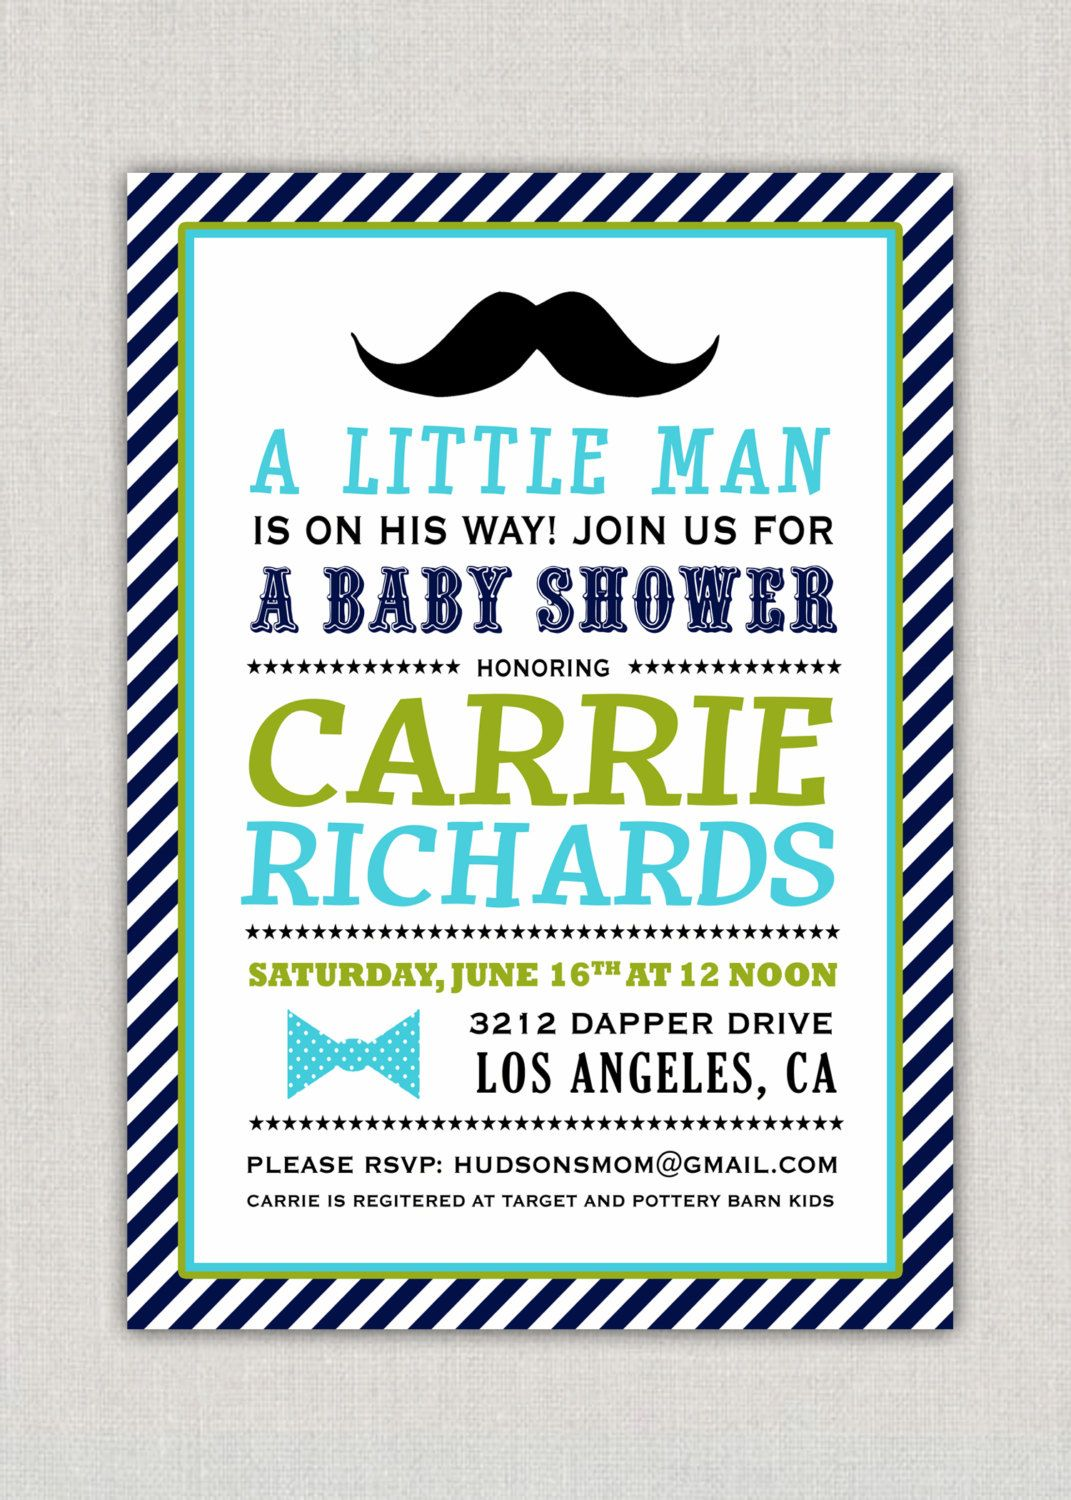 Little Man Baby Shower Party Invitation by announcingyou on Etsy ...